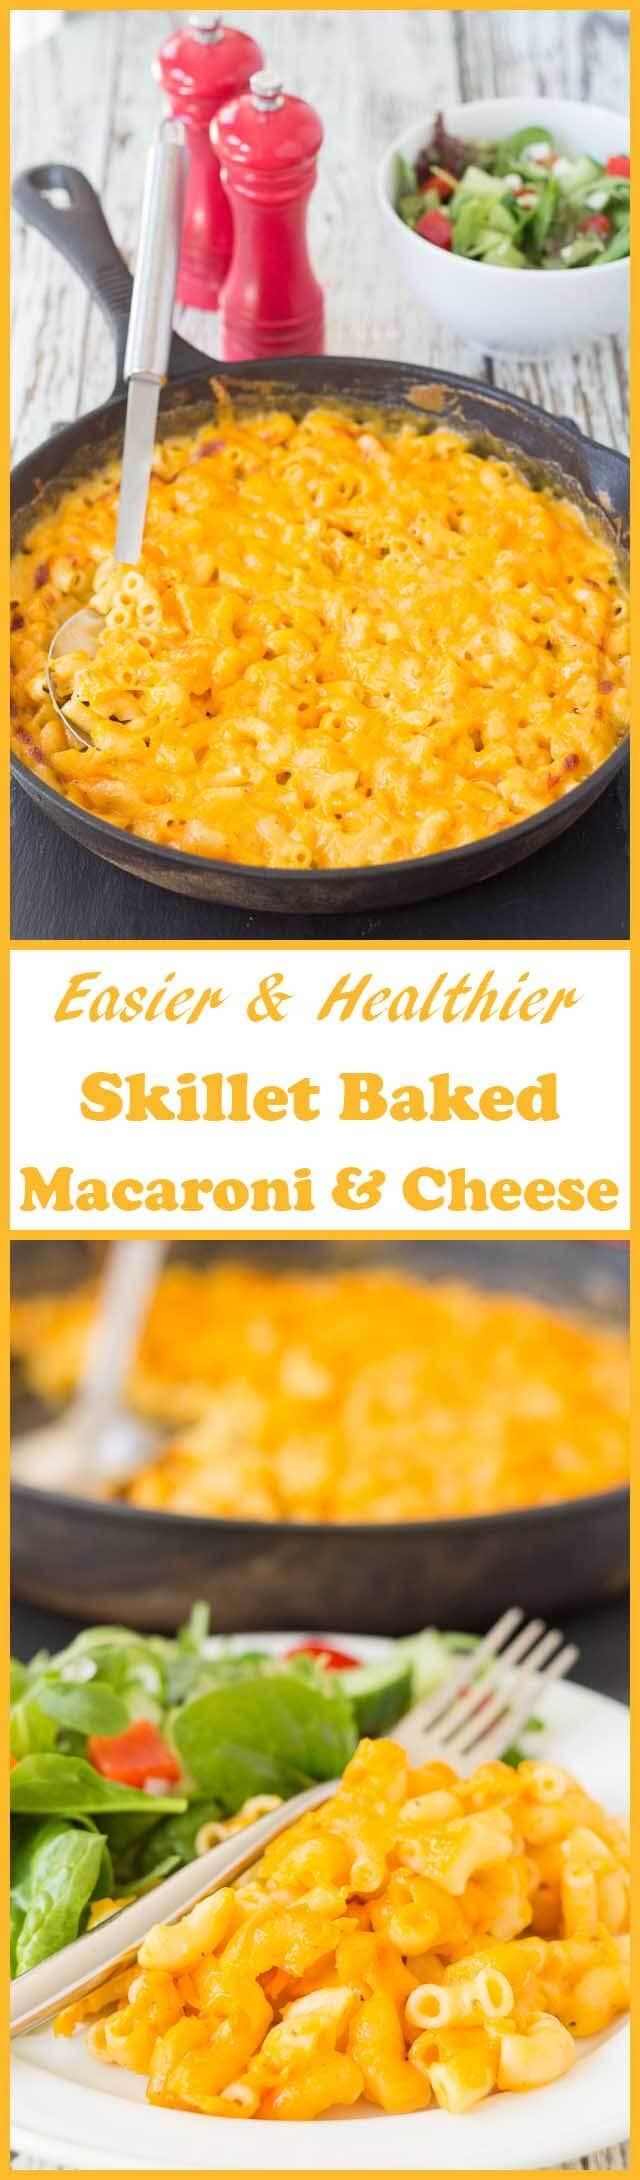 Skillet baked macaroni and cheese - the delicious classic comfort food easily made into a quick healthy meal for 4 with less washing up!